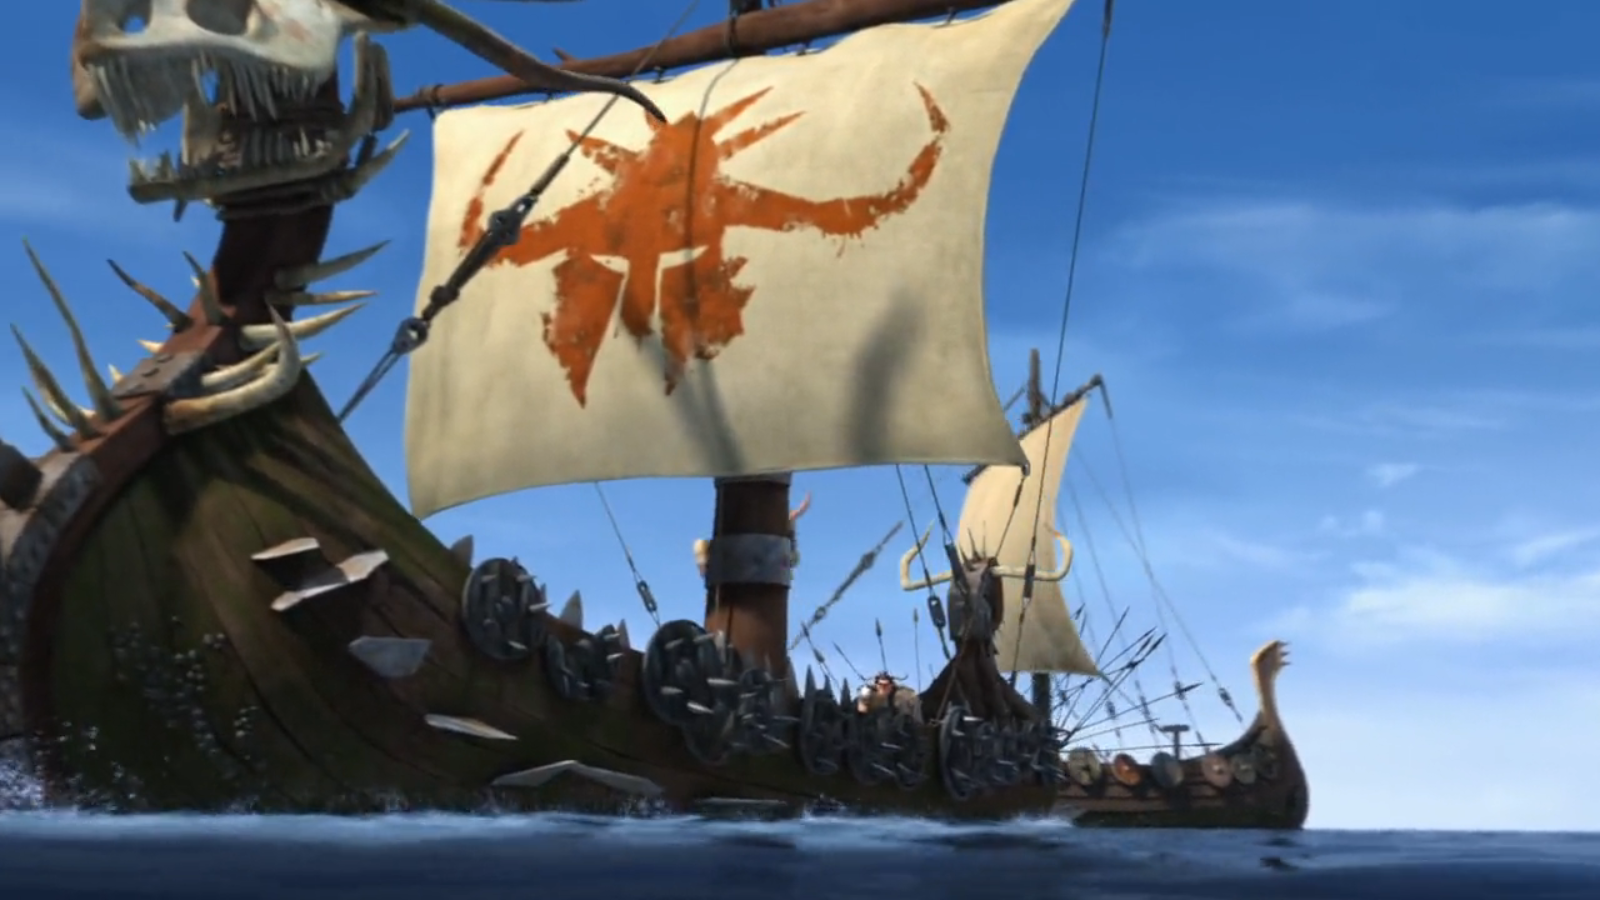 Image savages ship 8g how to train your dragon wiki fandom savages ship 8g ccuart Images